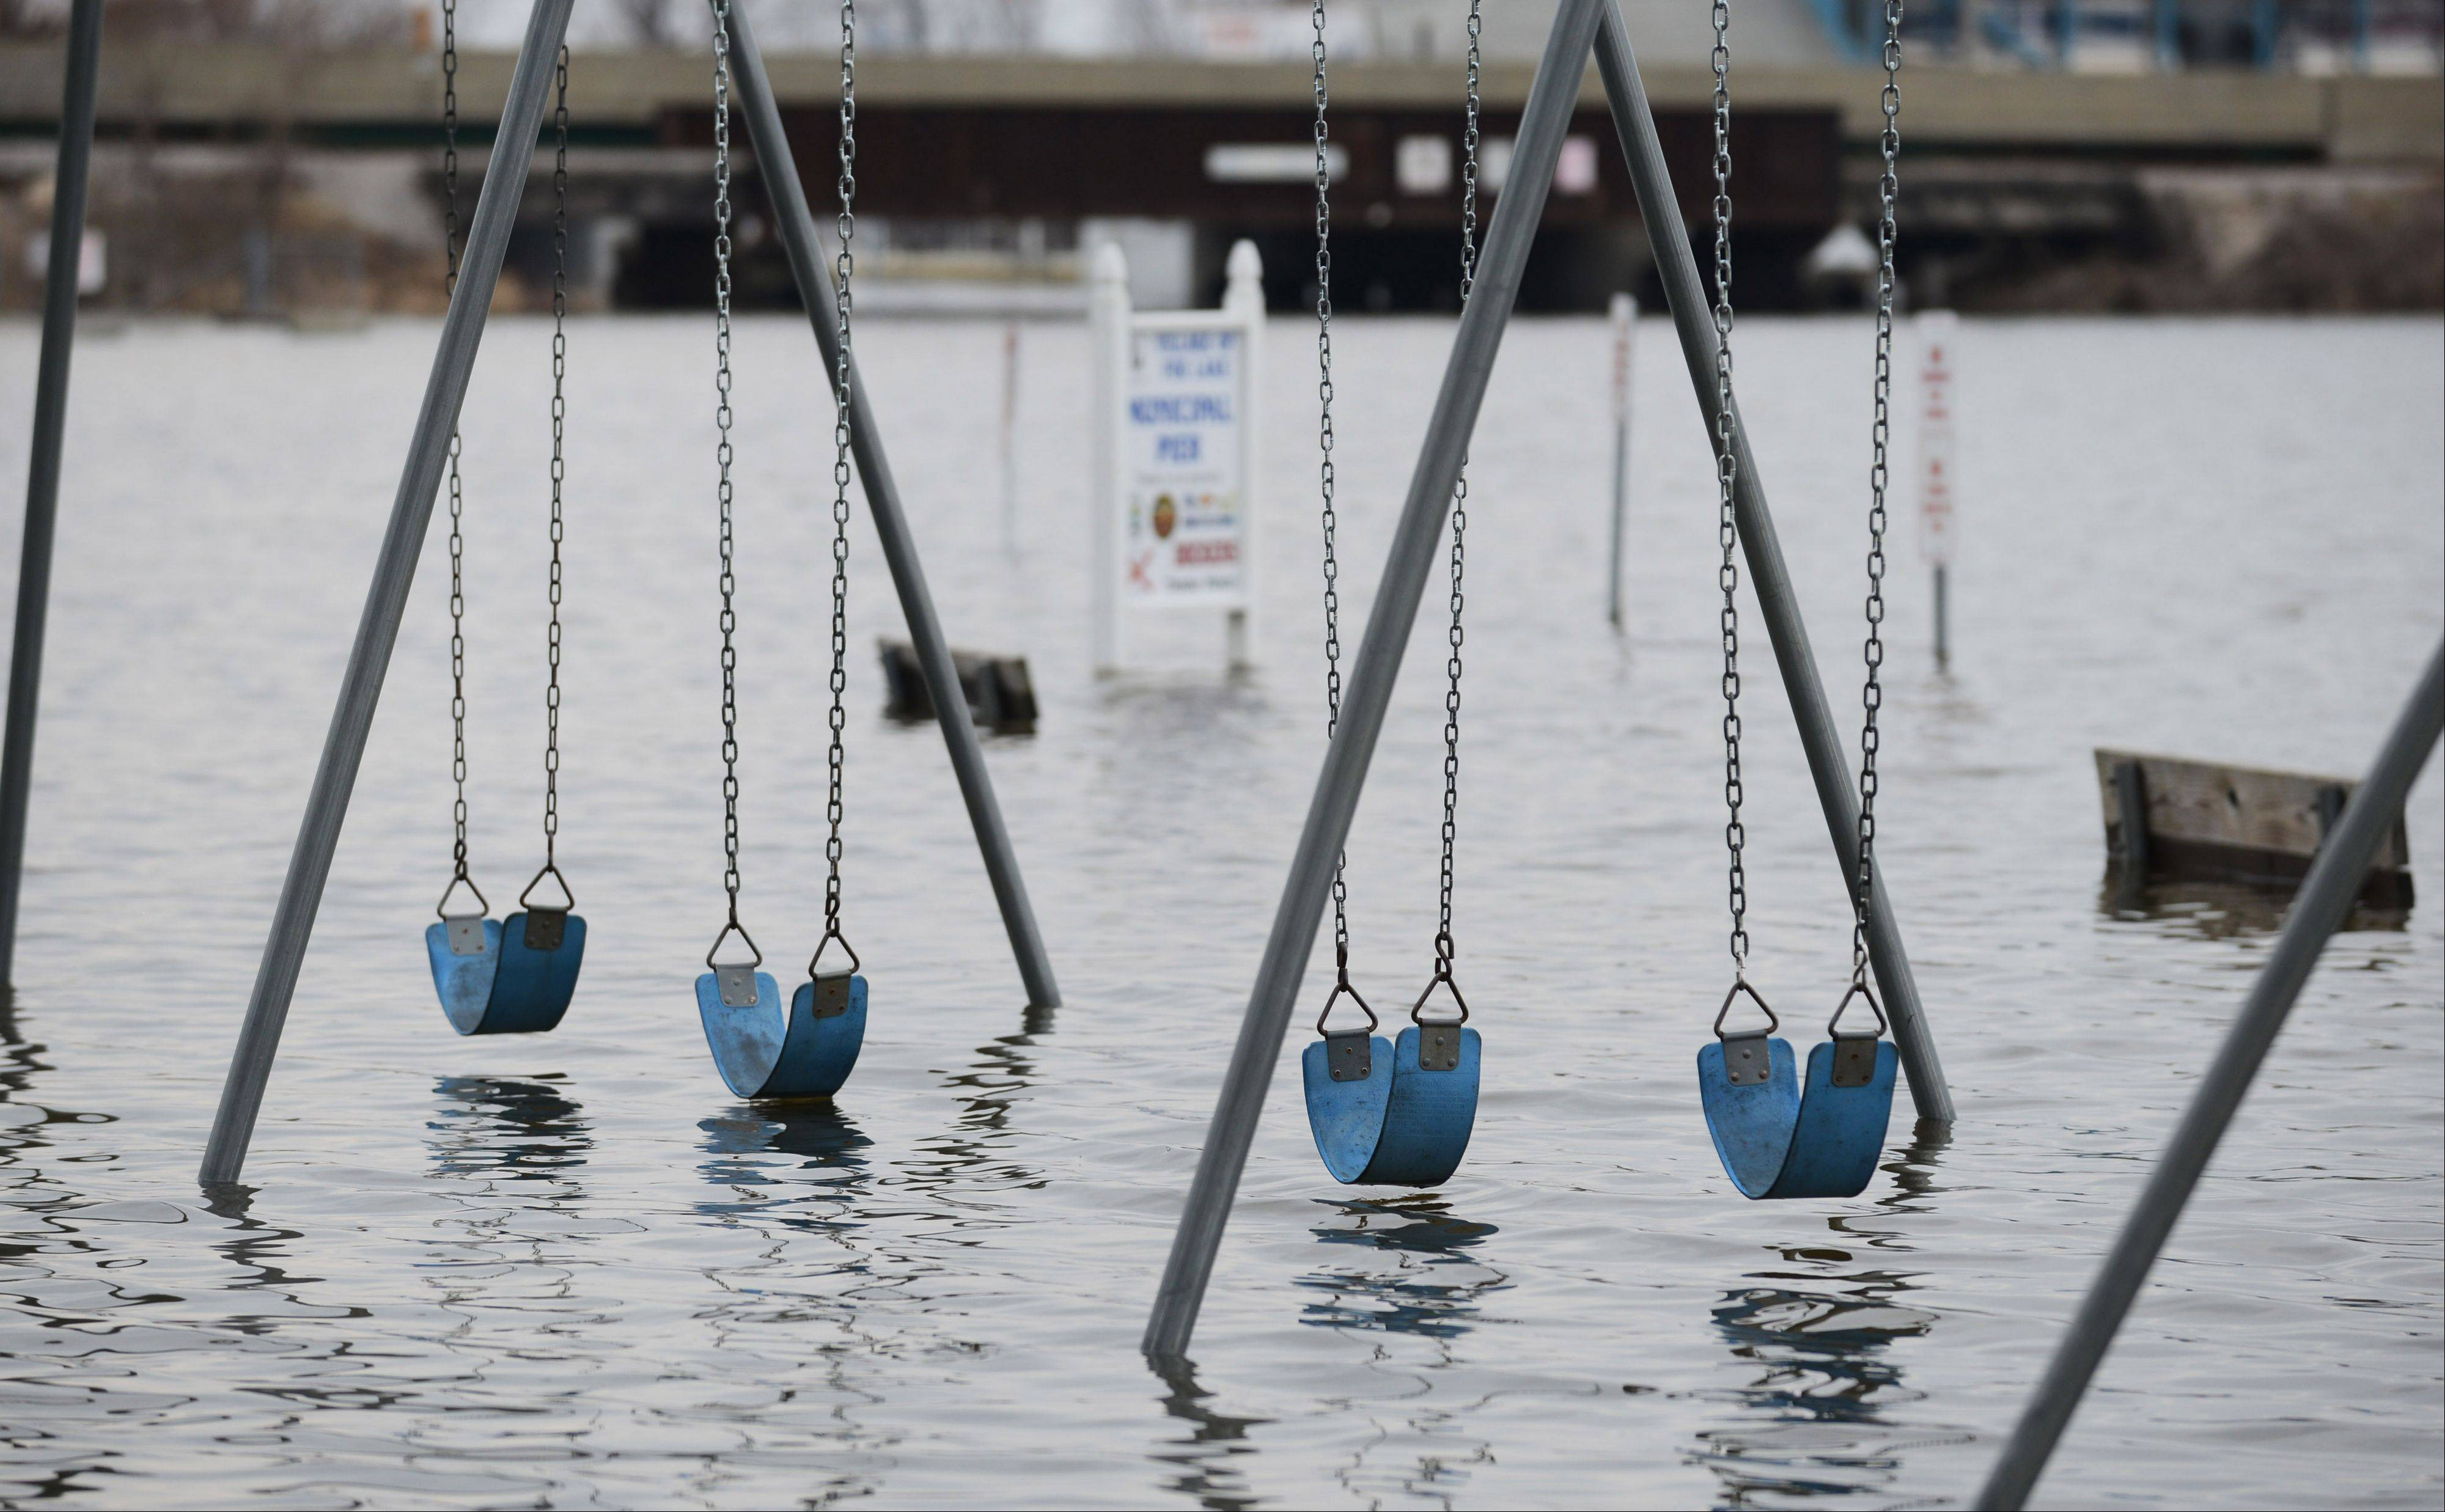 Swing sets are under water at Lakefront Park in Fox Lake Tuesday.